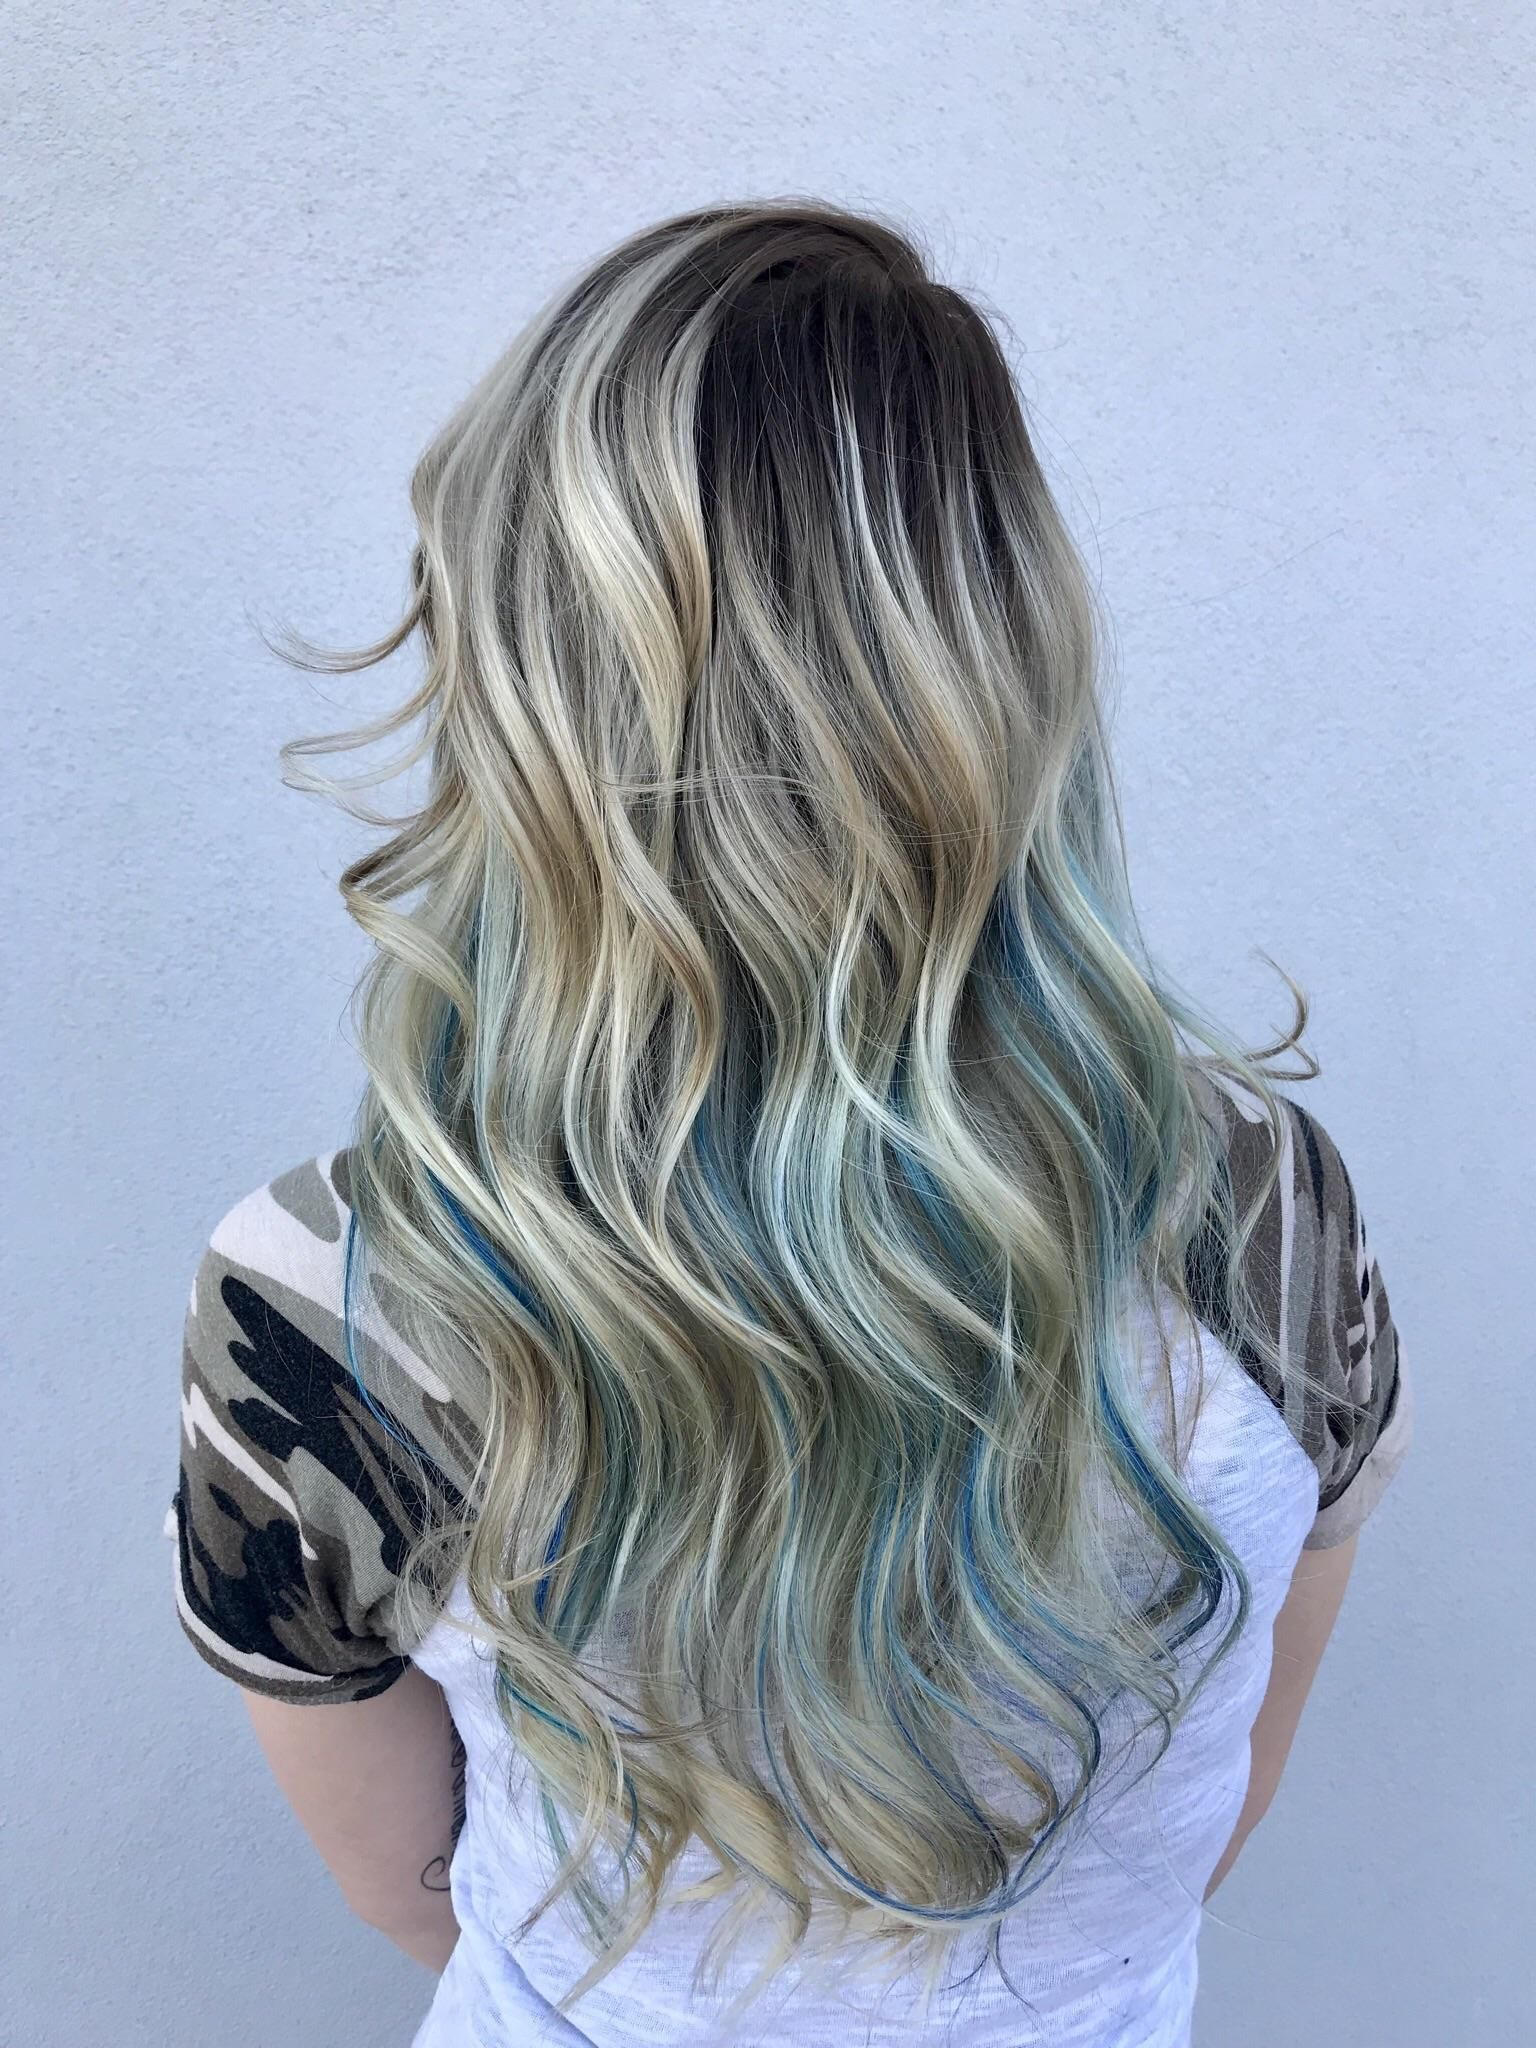 Blonde Balayage With Blue Highlights Blue Hair Highlights Blonde And Blue Hair Blonde Hair With Blue Highlights